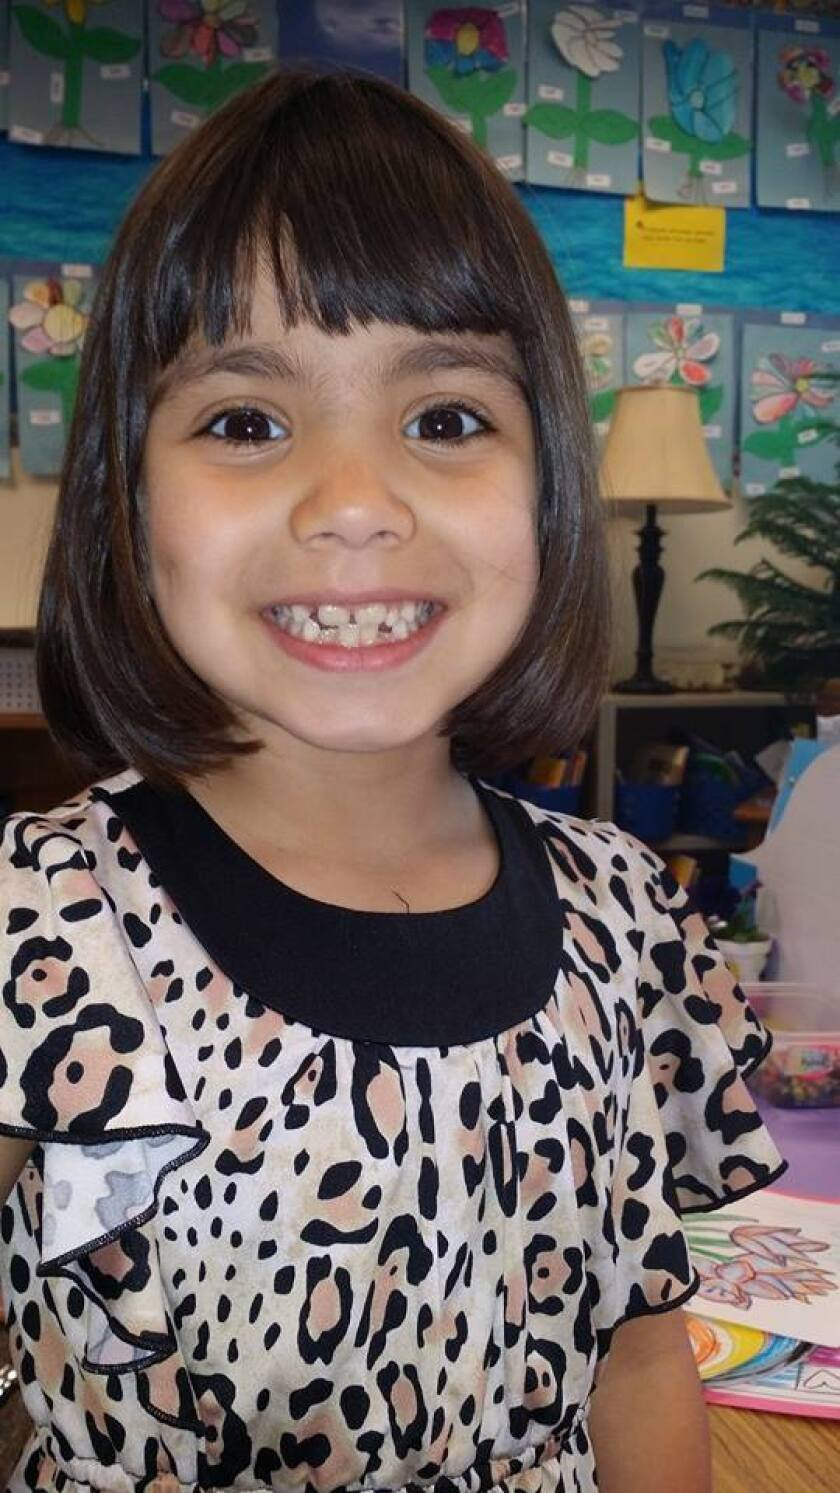 Jenise Wright, 6, was found dead Thursday, and authorities ruled her death a homicide the next day.